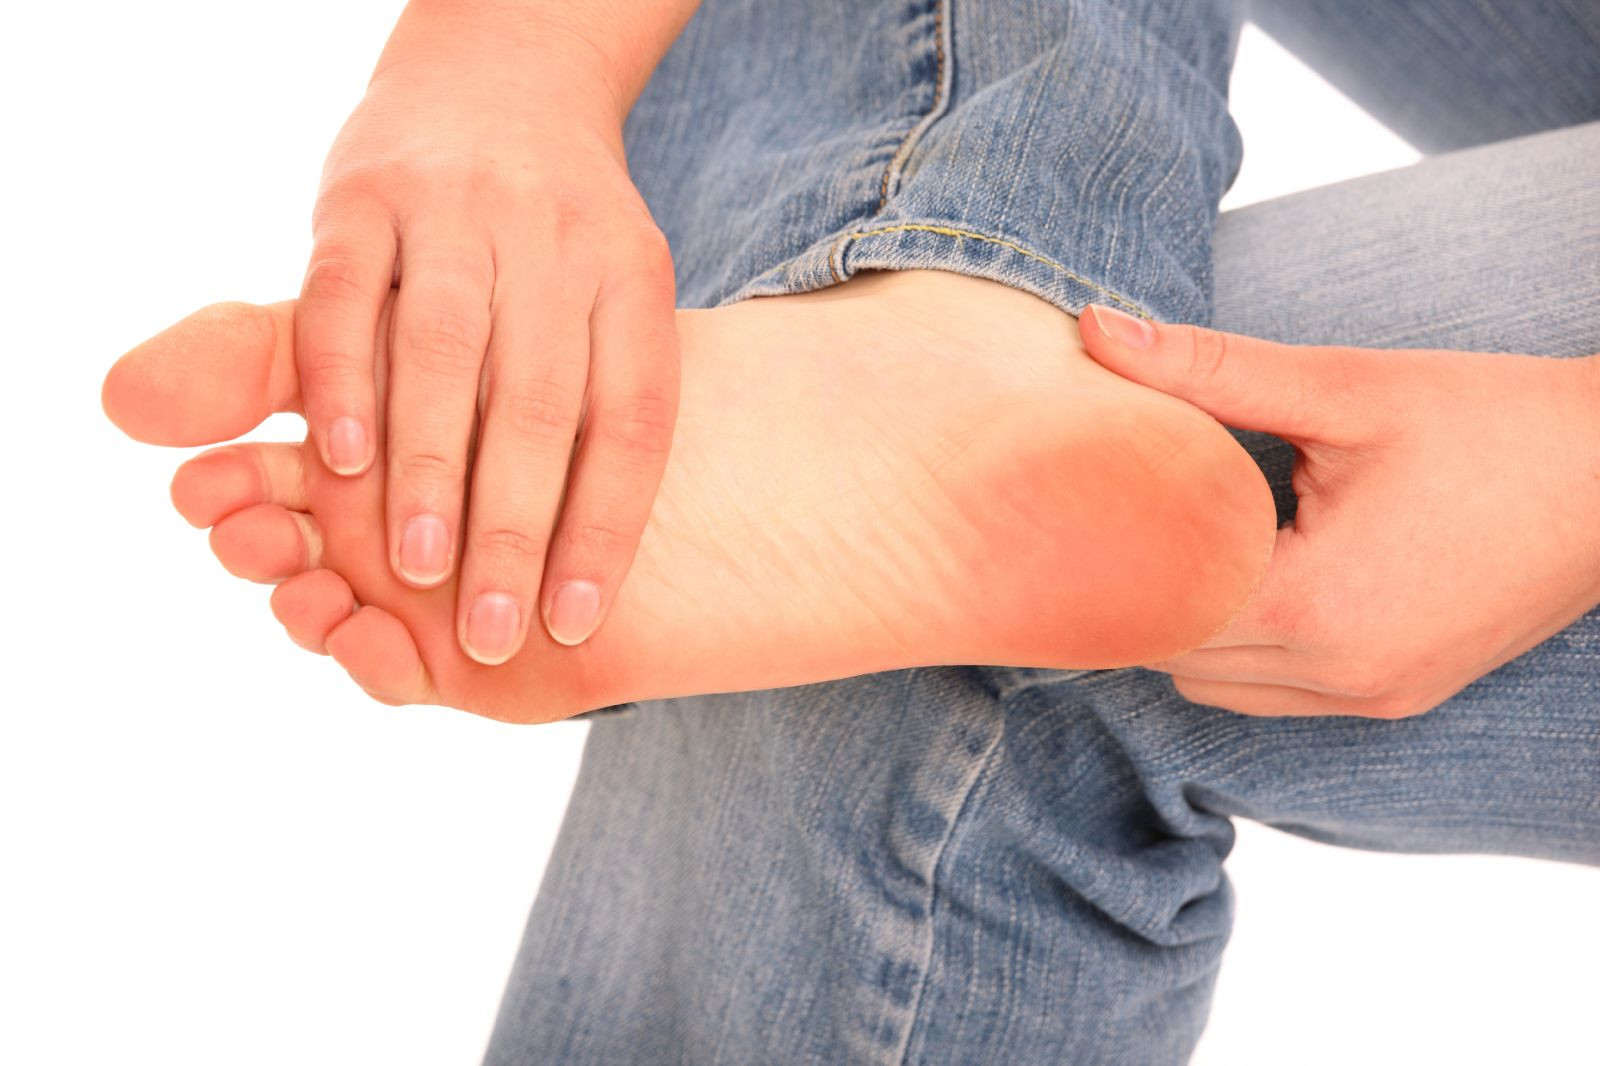 Manage Corns and Calluses Effectively